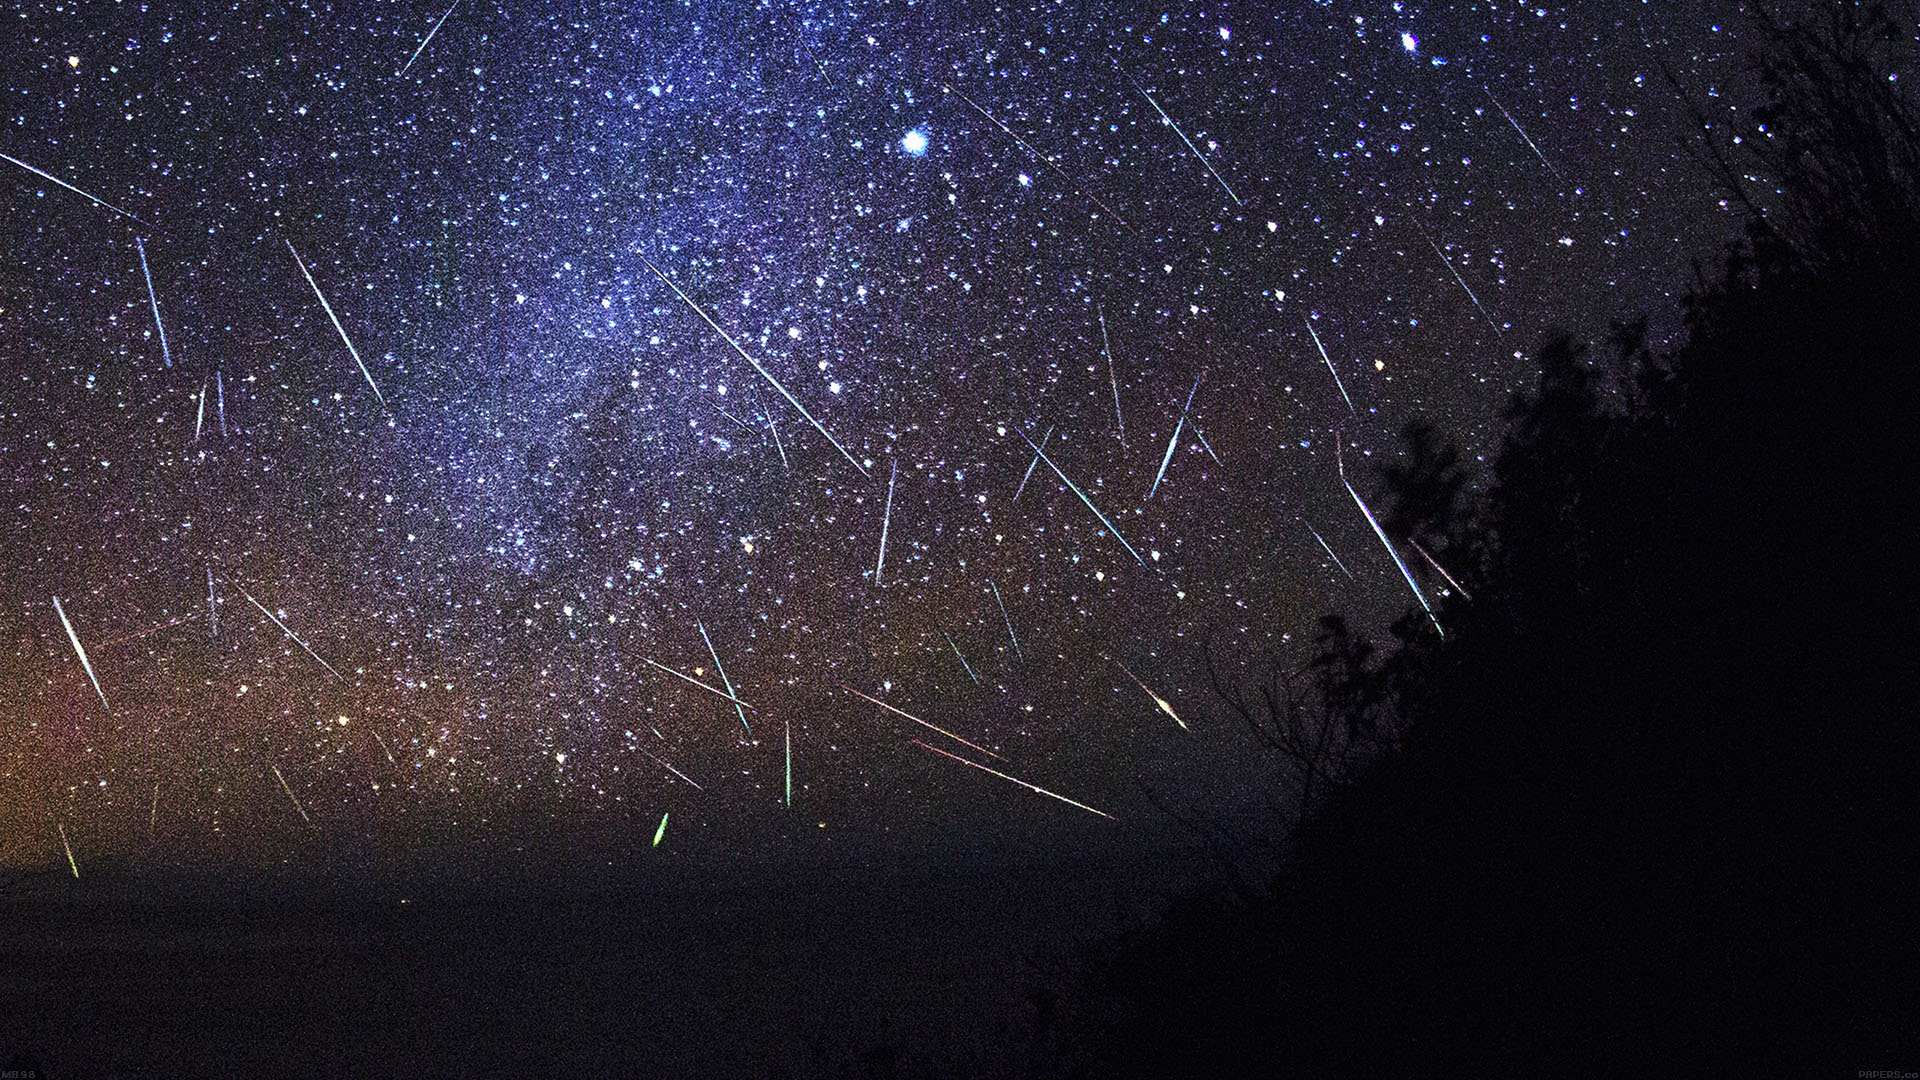 Desktoppapers Co Mb98 Wallpaper Meteor Shower Sky Night